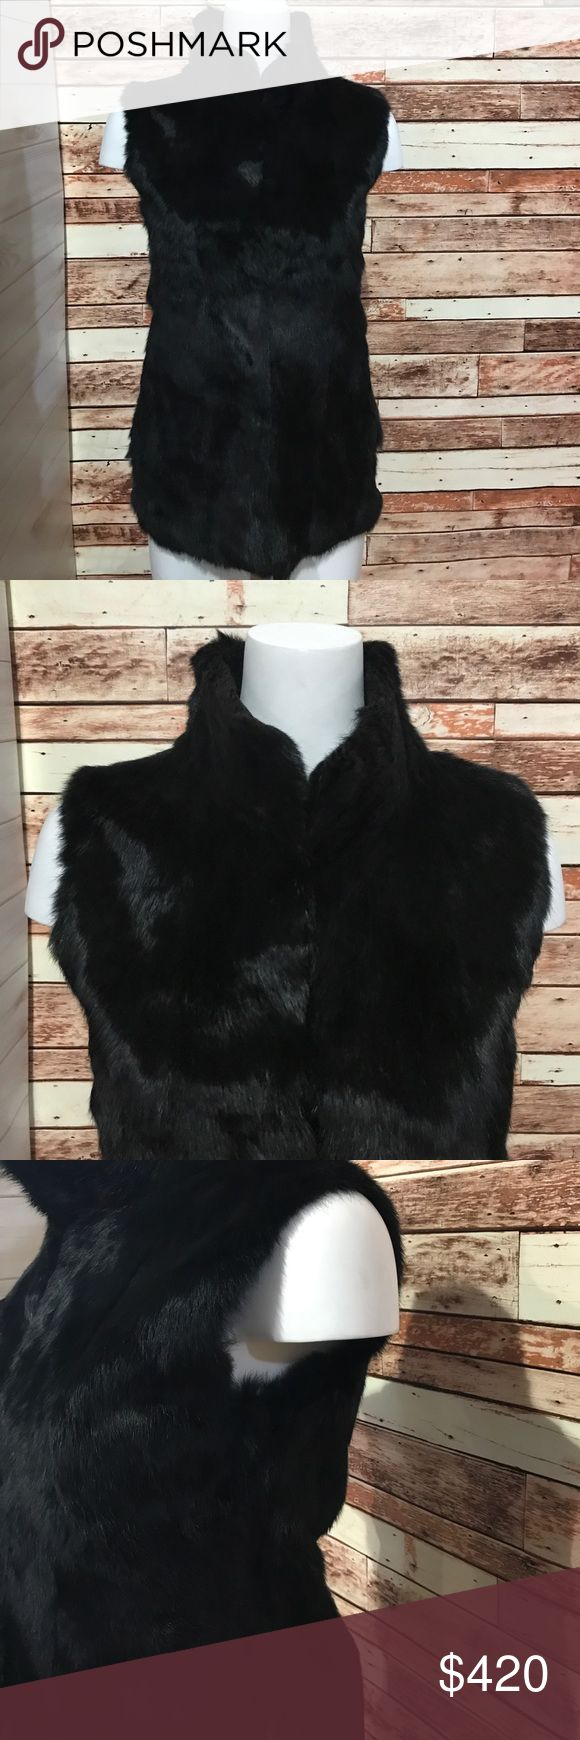 Barneys New York Rabbit Fur Vest Please use photos as reference to condition and what is included. Barneys New York Jackets & Coats Vests